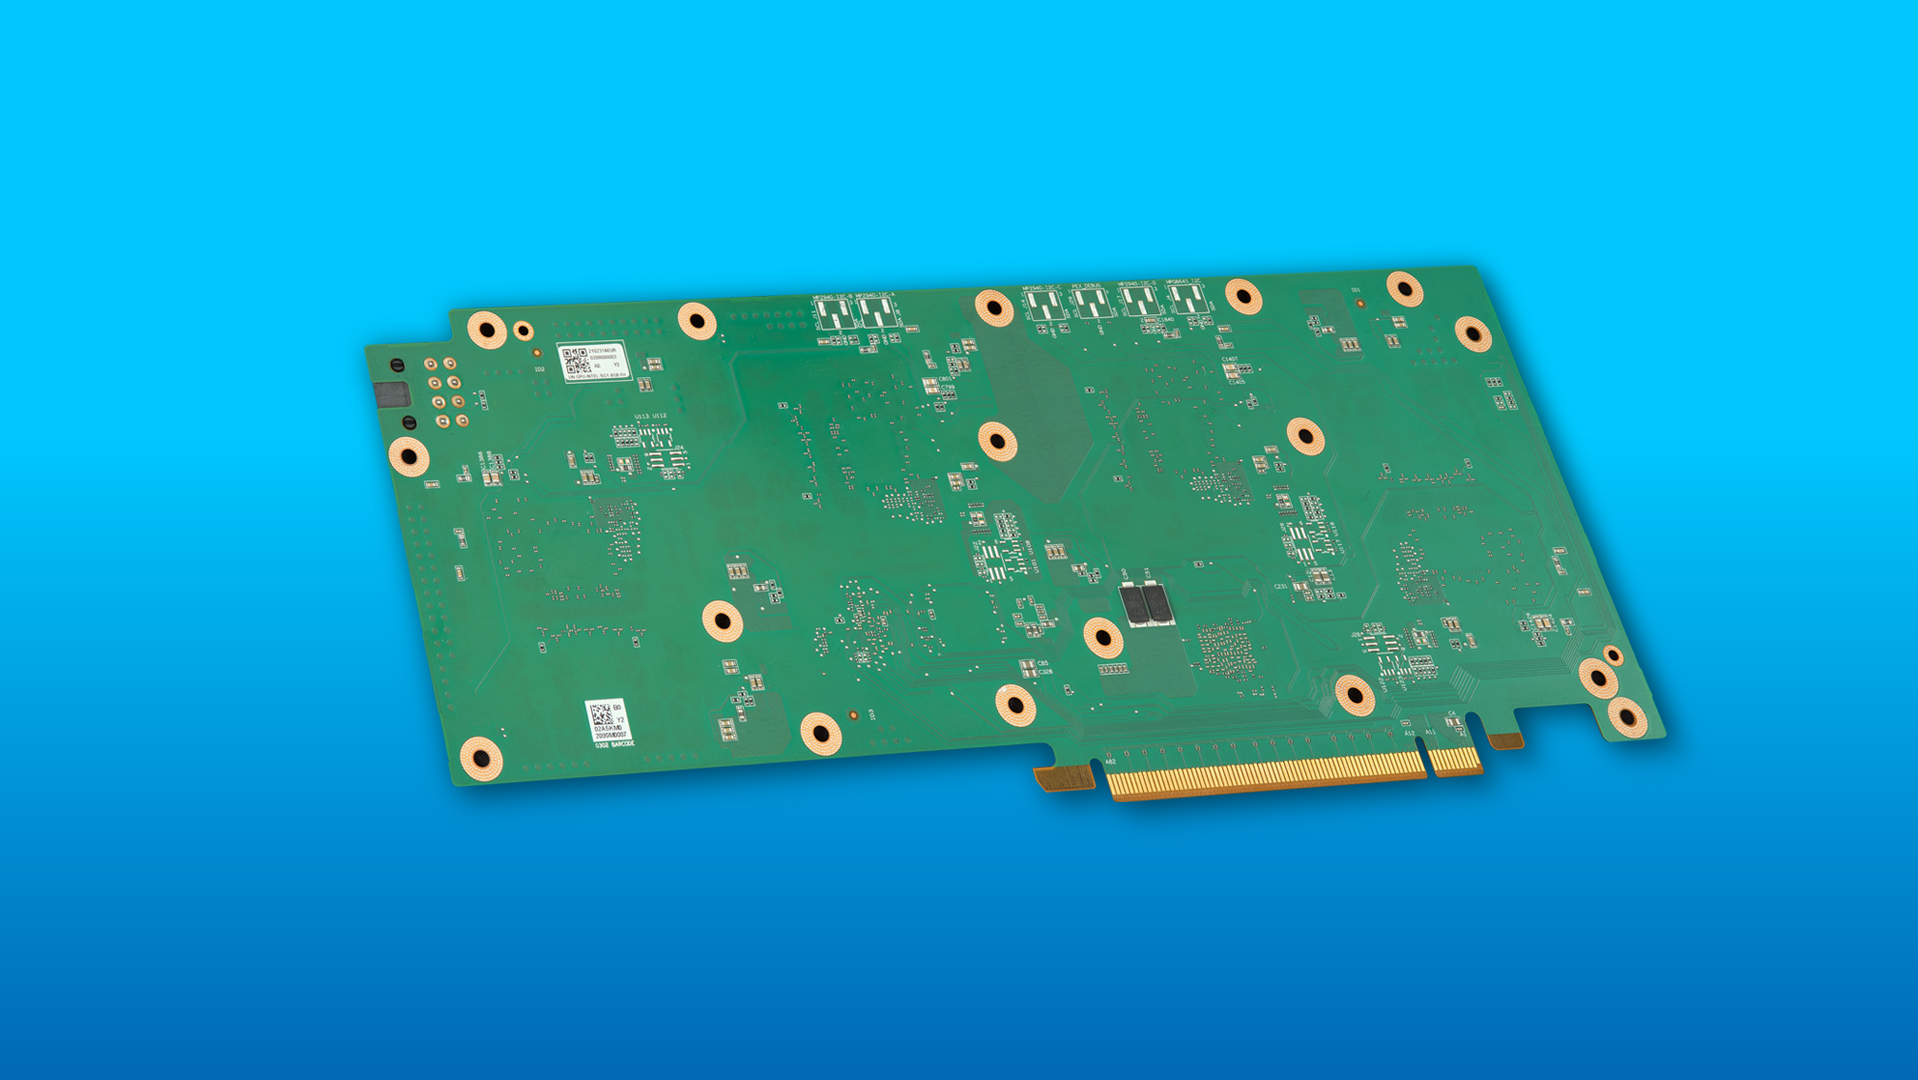 Intel-H3C-XG310-PCIe-card-5